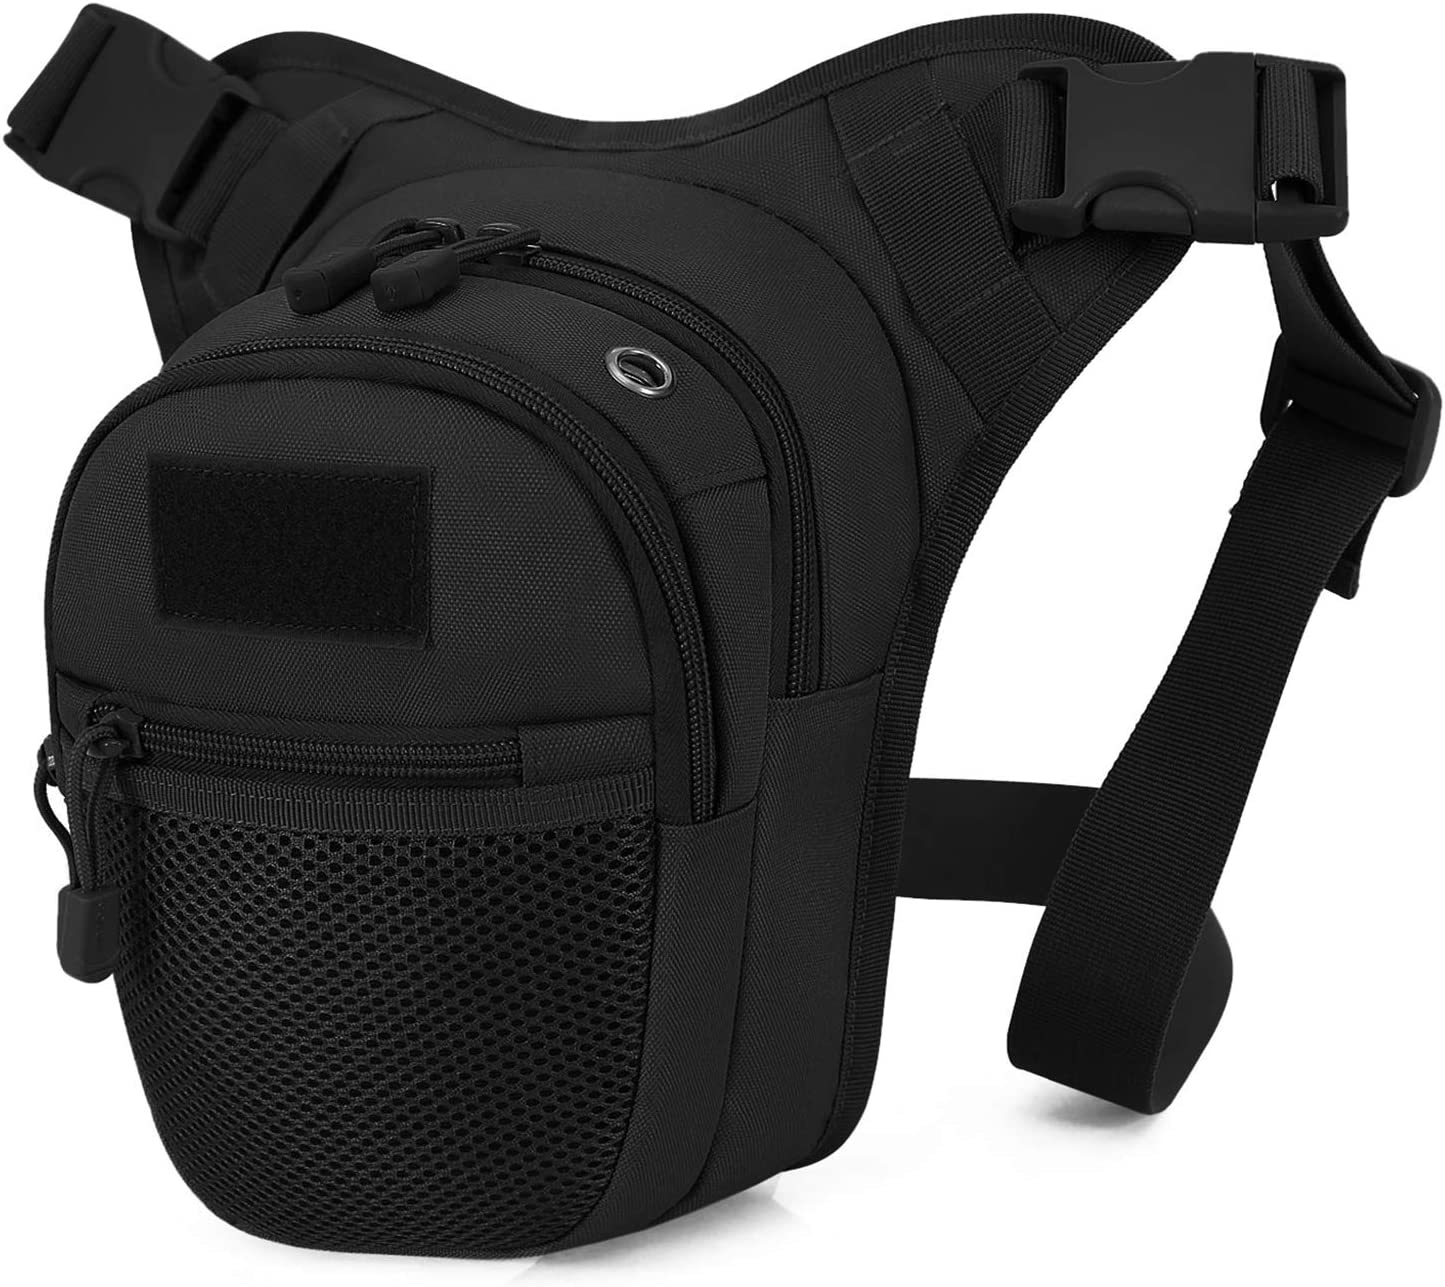 BAIGIO Tactical Drop Leg Dealing full price reduction New product!! Waist Bag Pack - Hip MOL Thigh Military